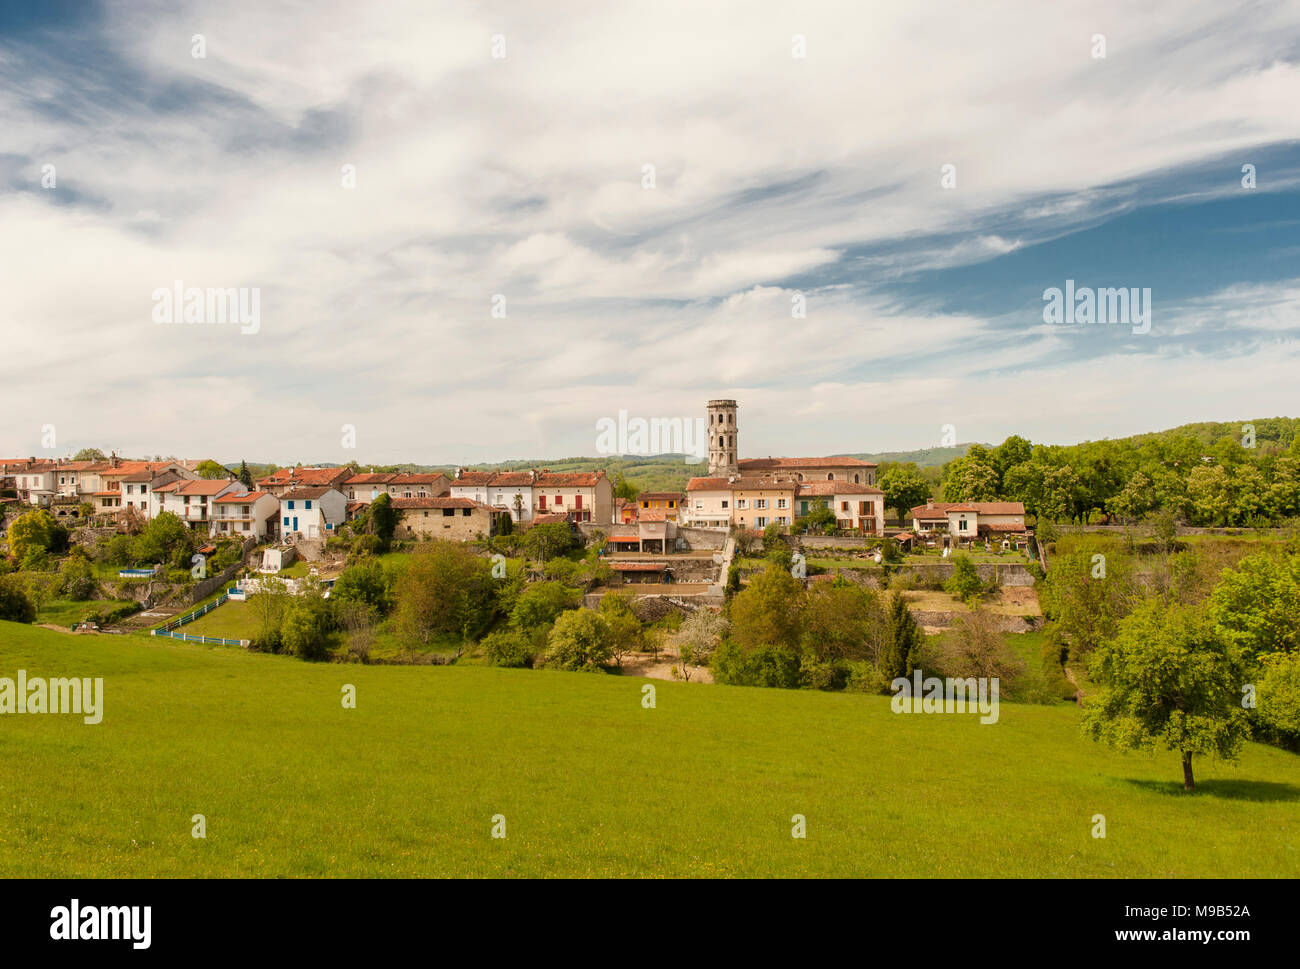 View of the old town of Rimont in Ariège, southern France Stock Photo